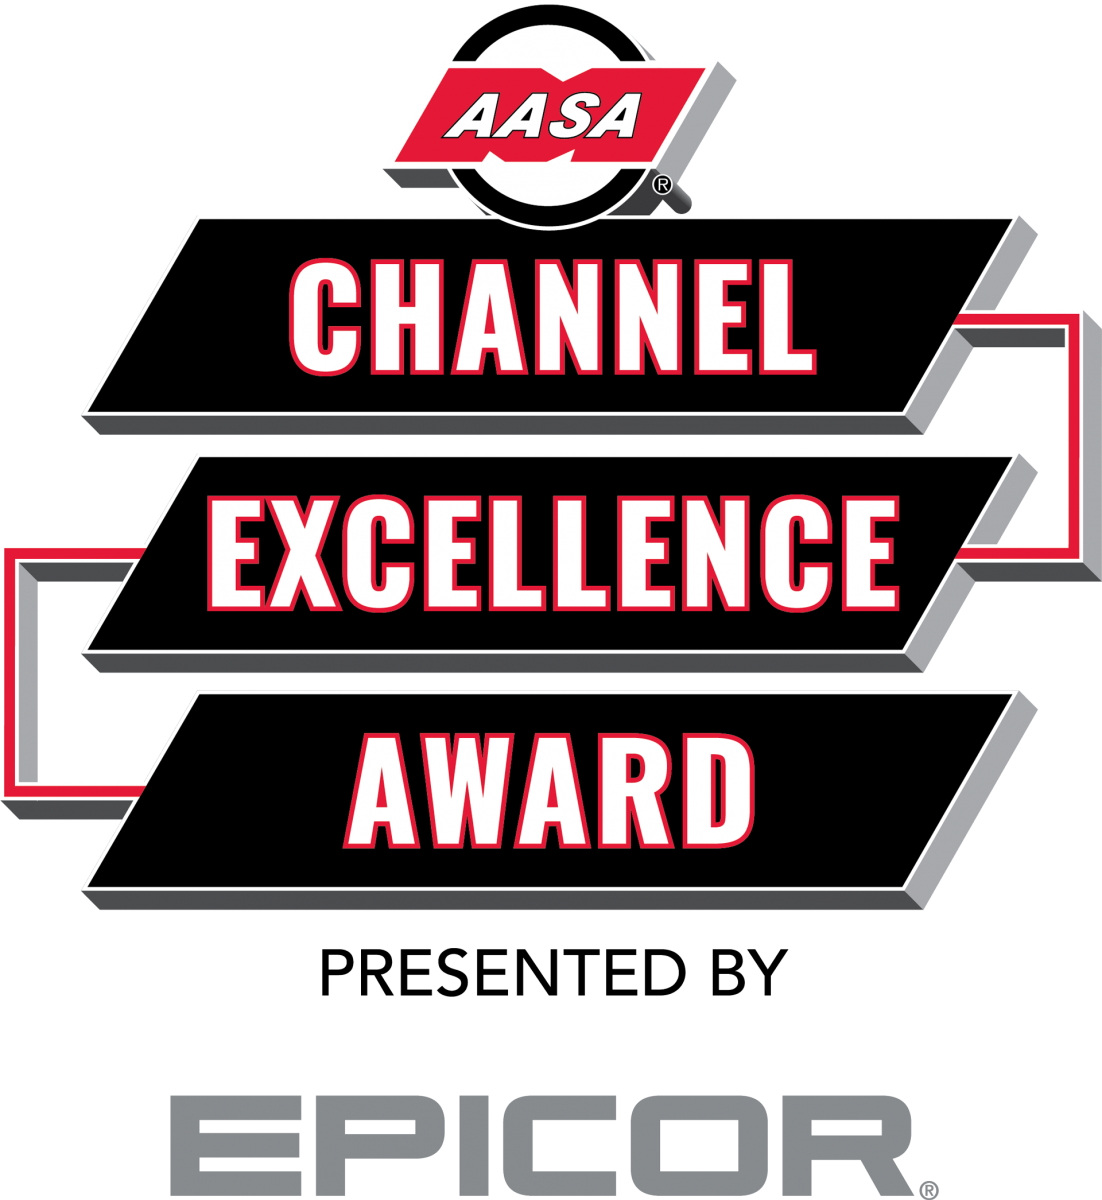 Channel Excellence Award logo